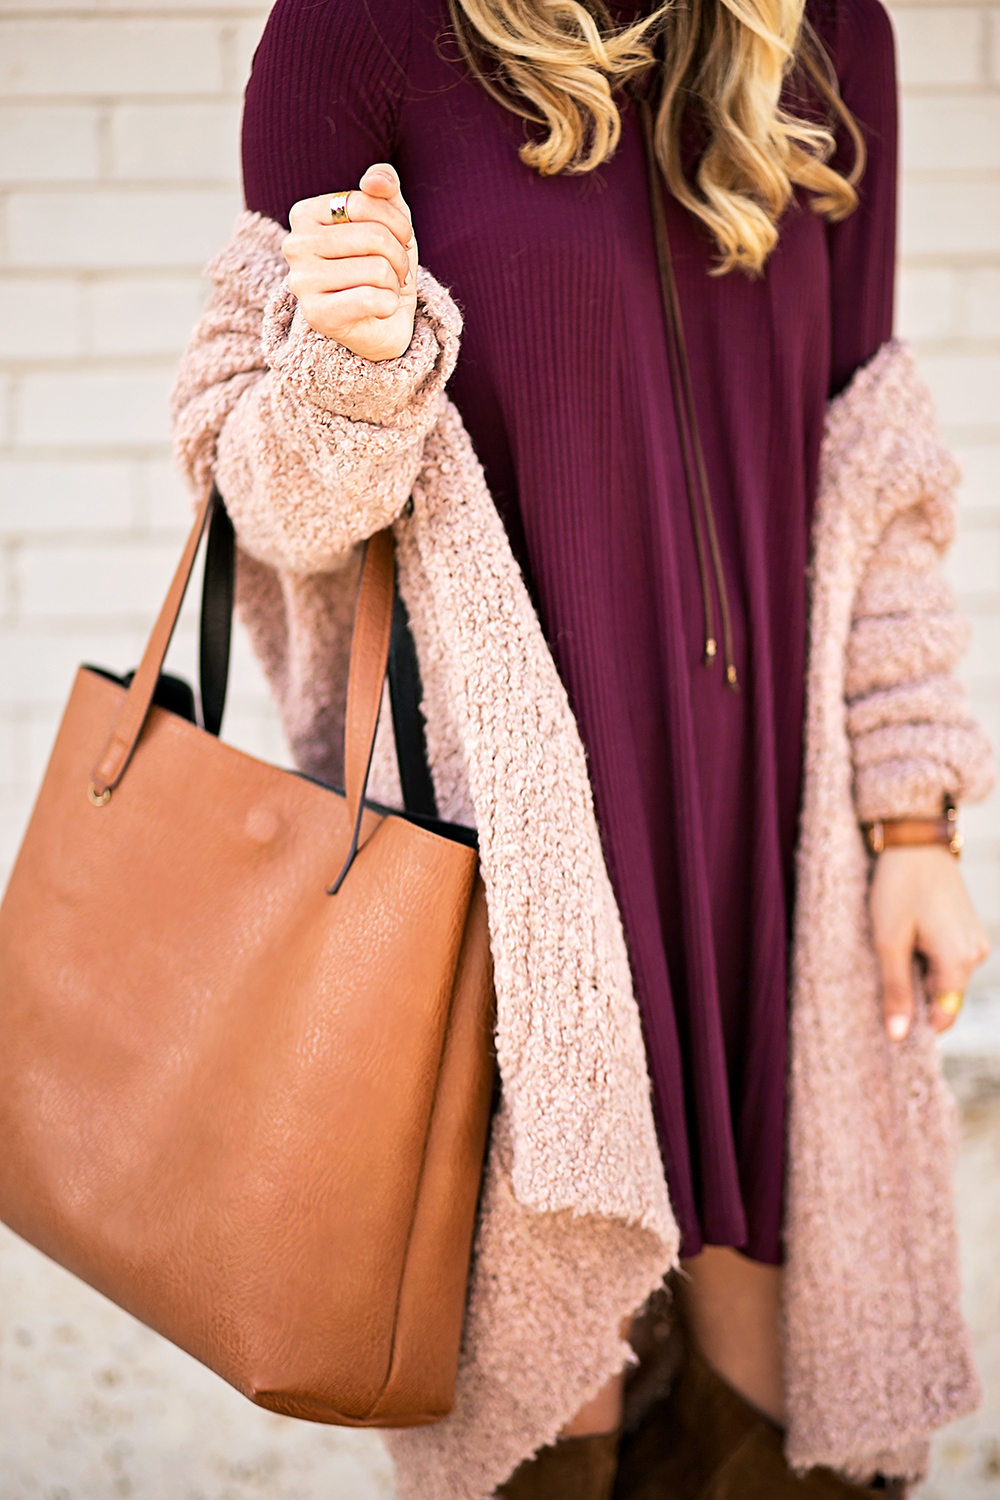 livvyland-blog-olivia-watson-cozy-fall-layers-dress-otk-boots-chunky-knit-cardigan-blush-pink-boho-outfit-6